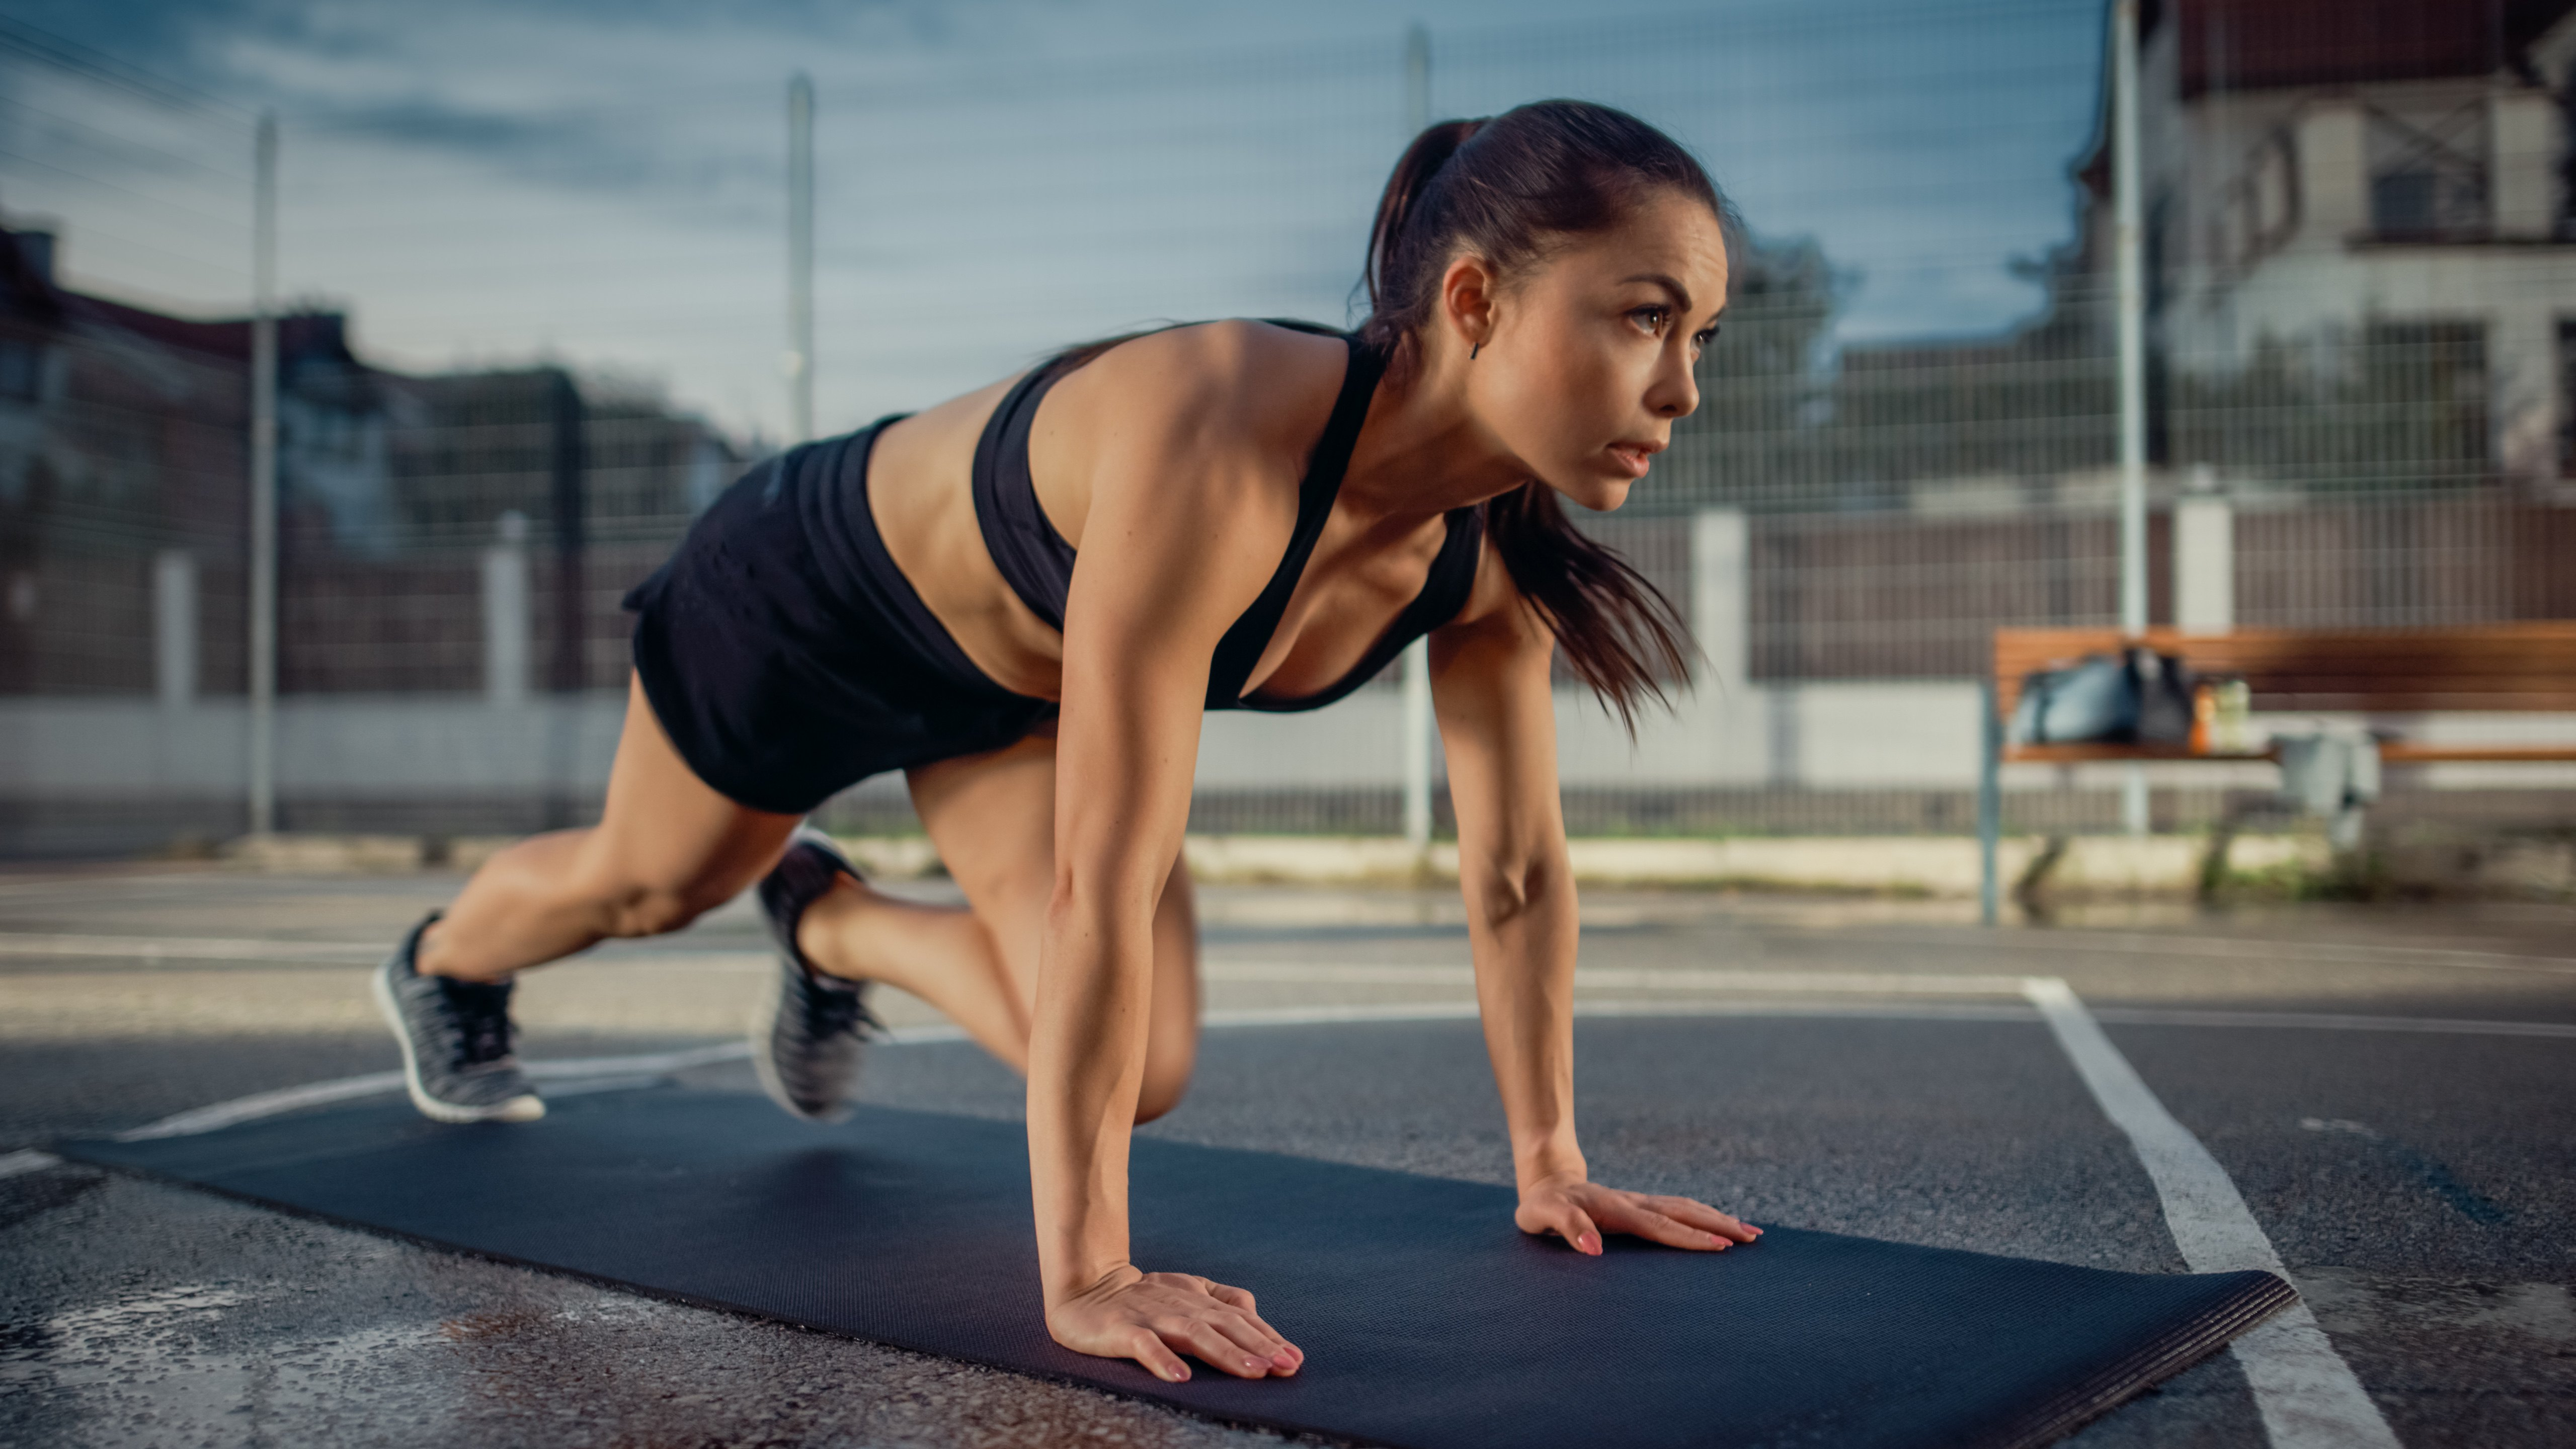 Struggling With Mountain Climbers? Here's What Your Body Is Telling You